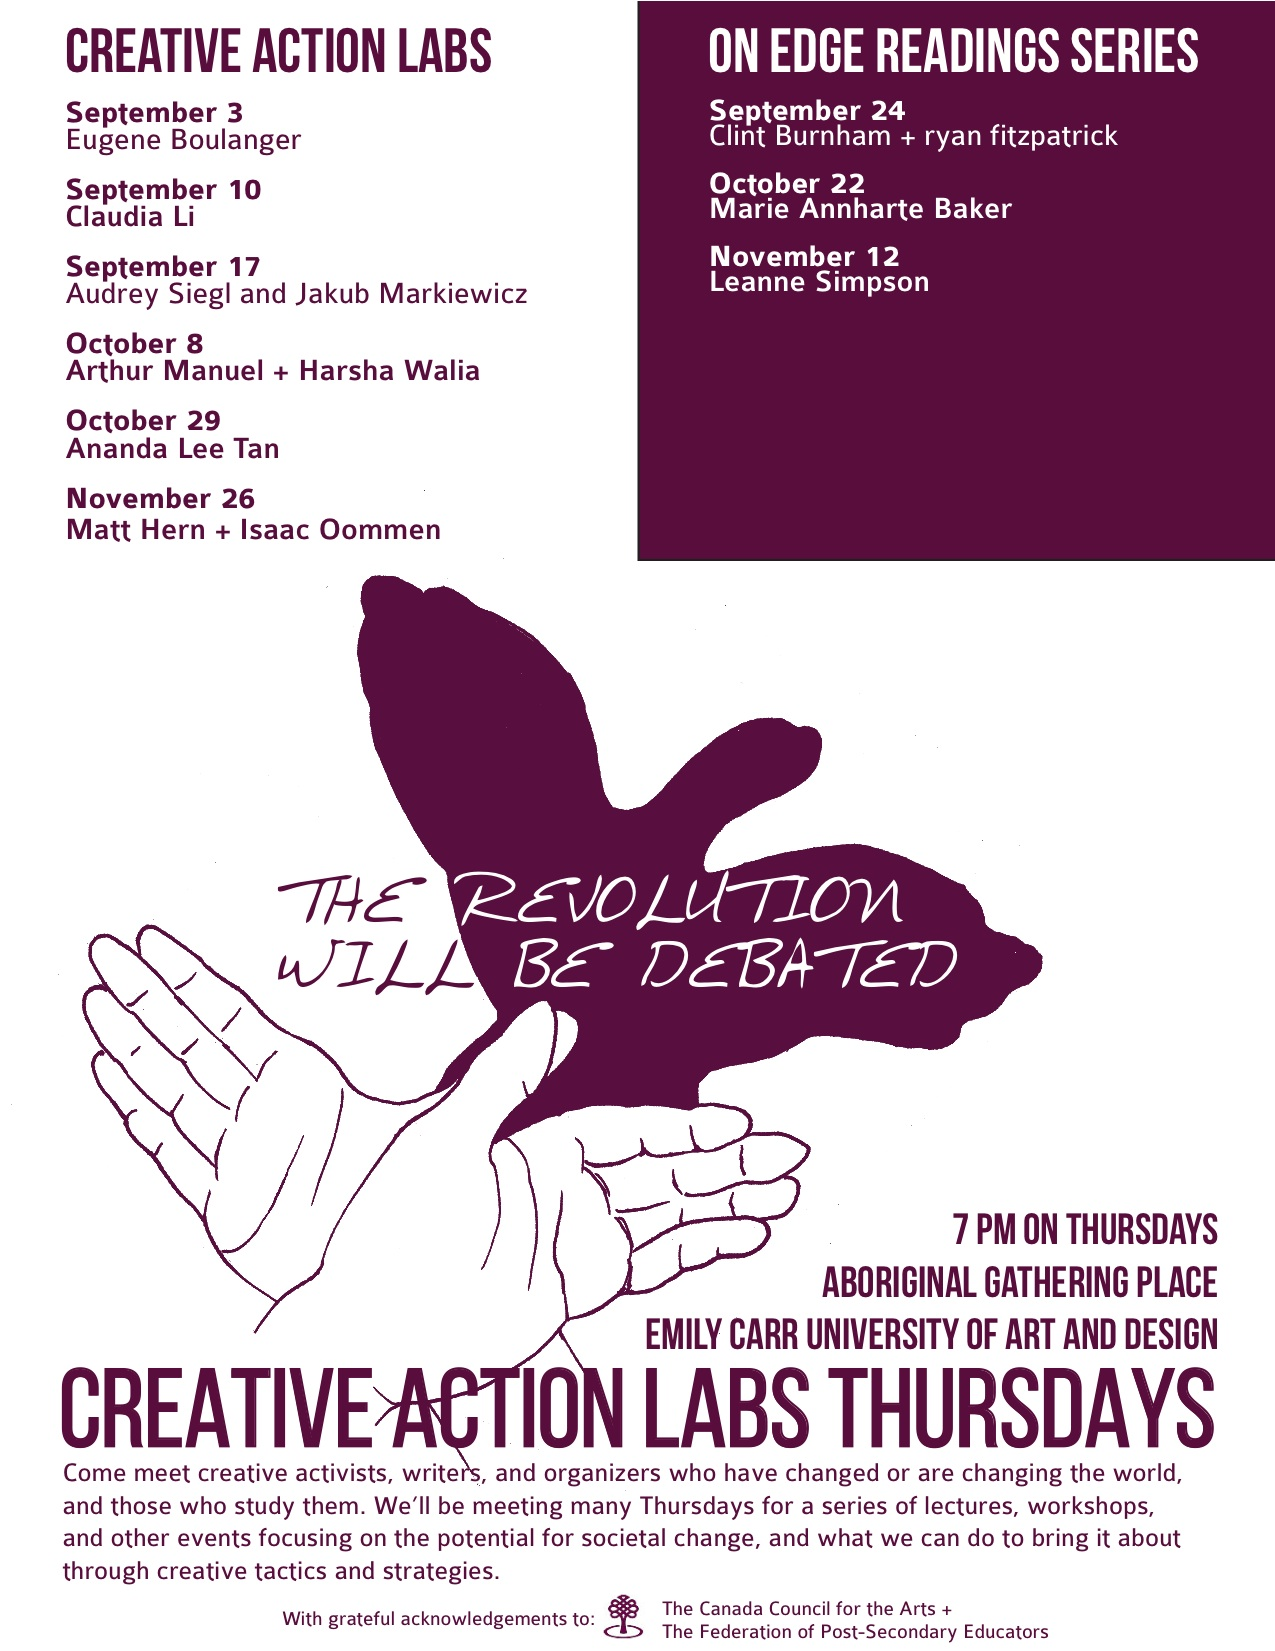 Creative-Action-Labs-3